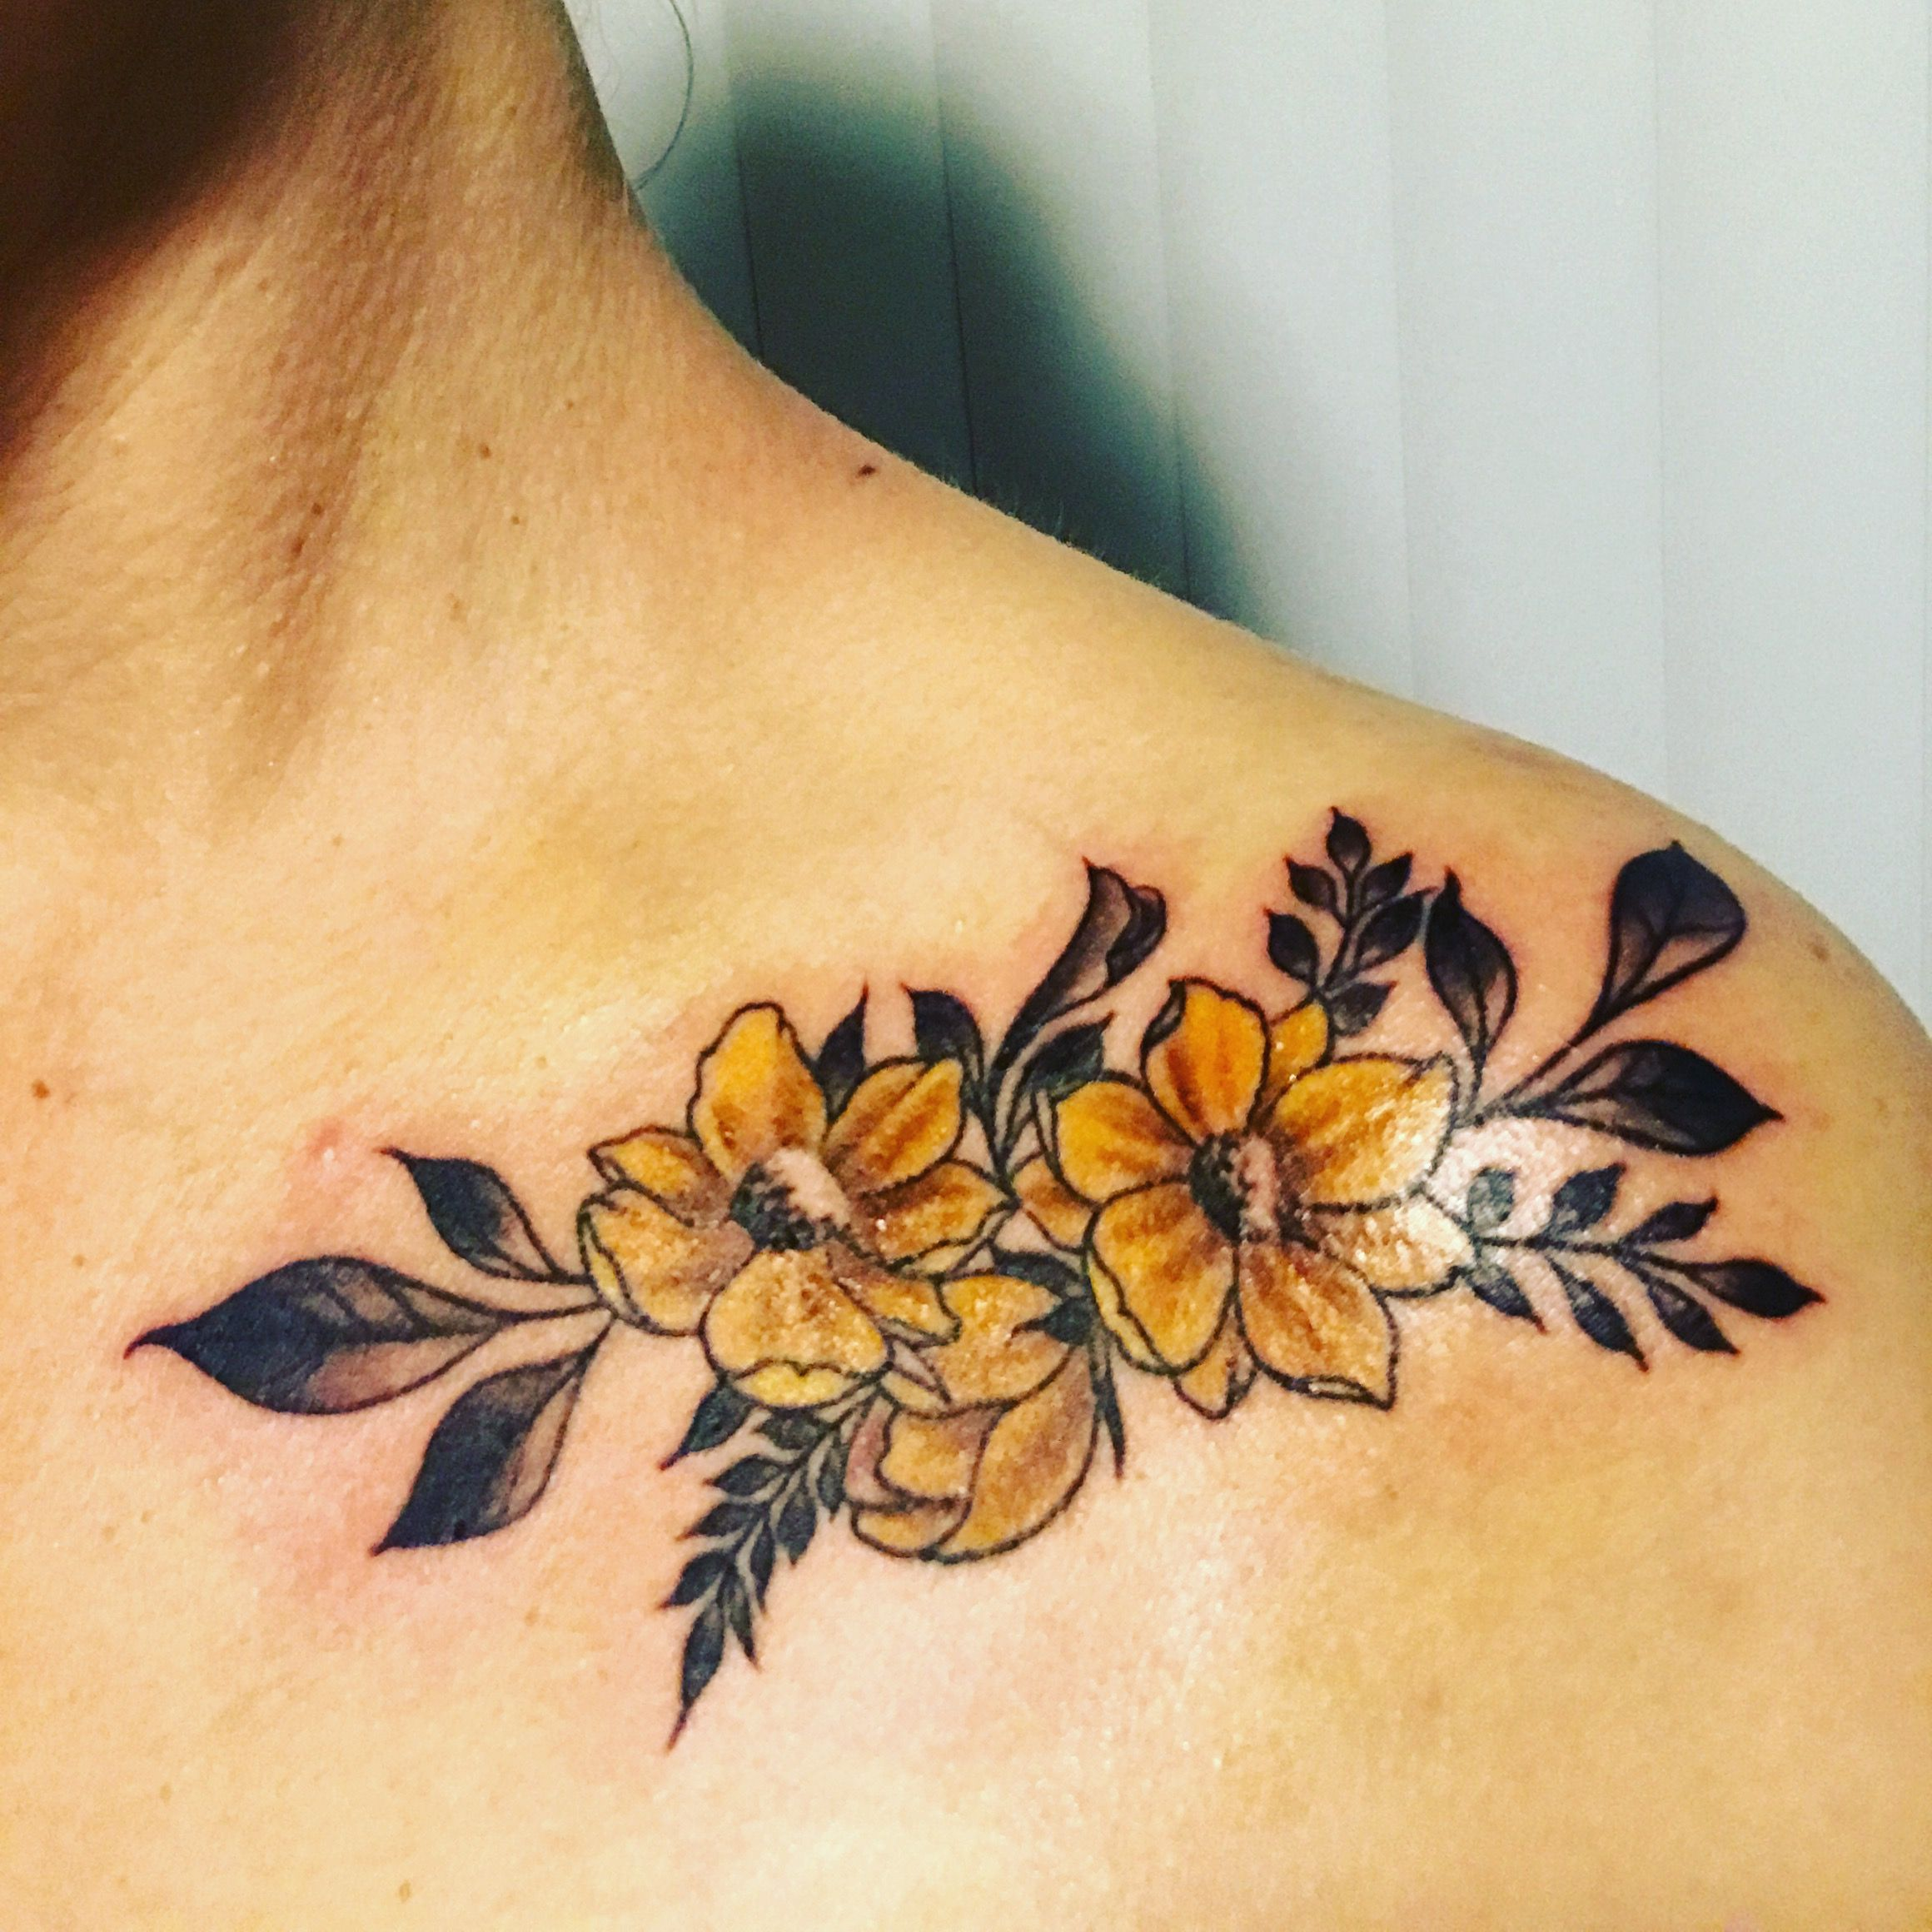 Buttercup Tattoo On My Collarbone For My Fiance He Has Called Me Buttercup For Years Tattoo Flower Buttercup Tattoo Tattoos Sunflower Tattoo Shoulder